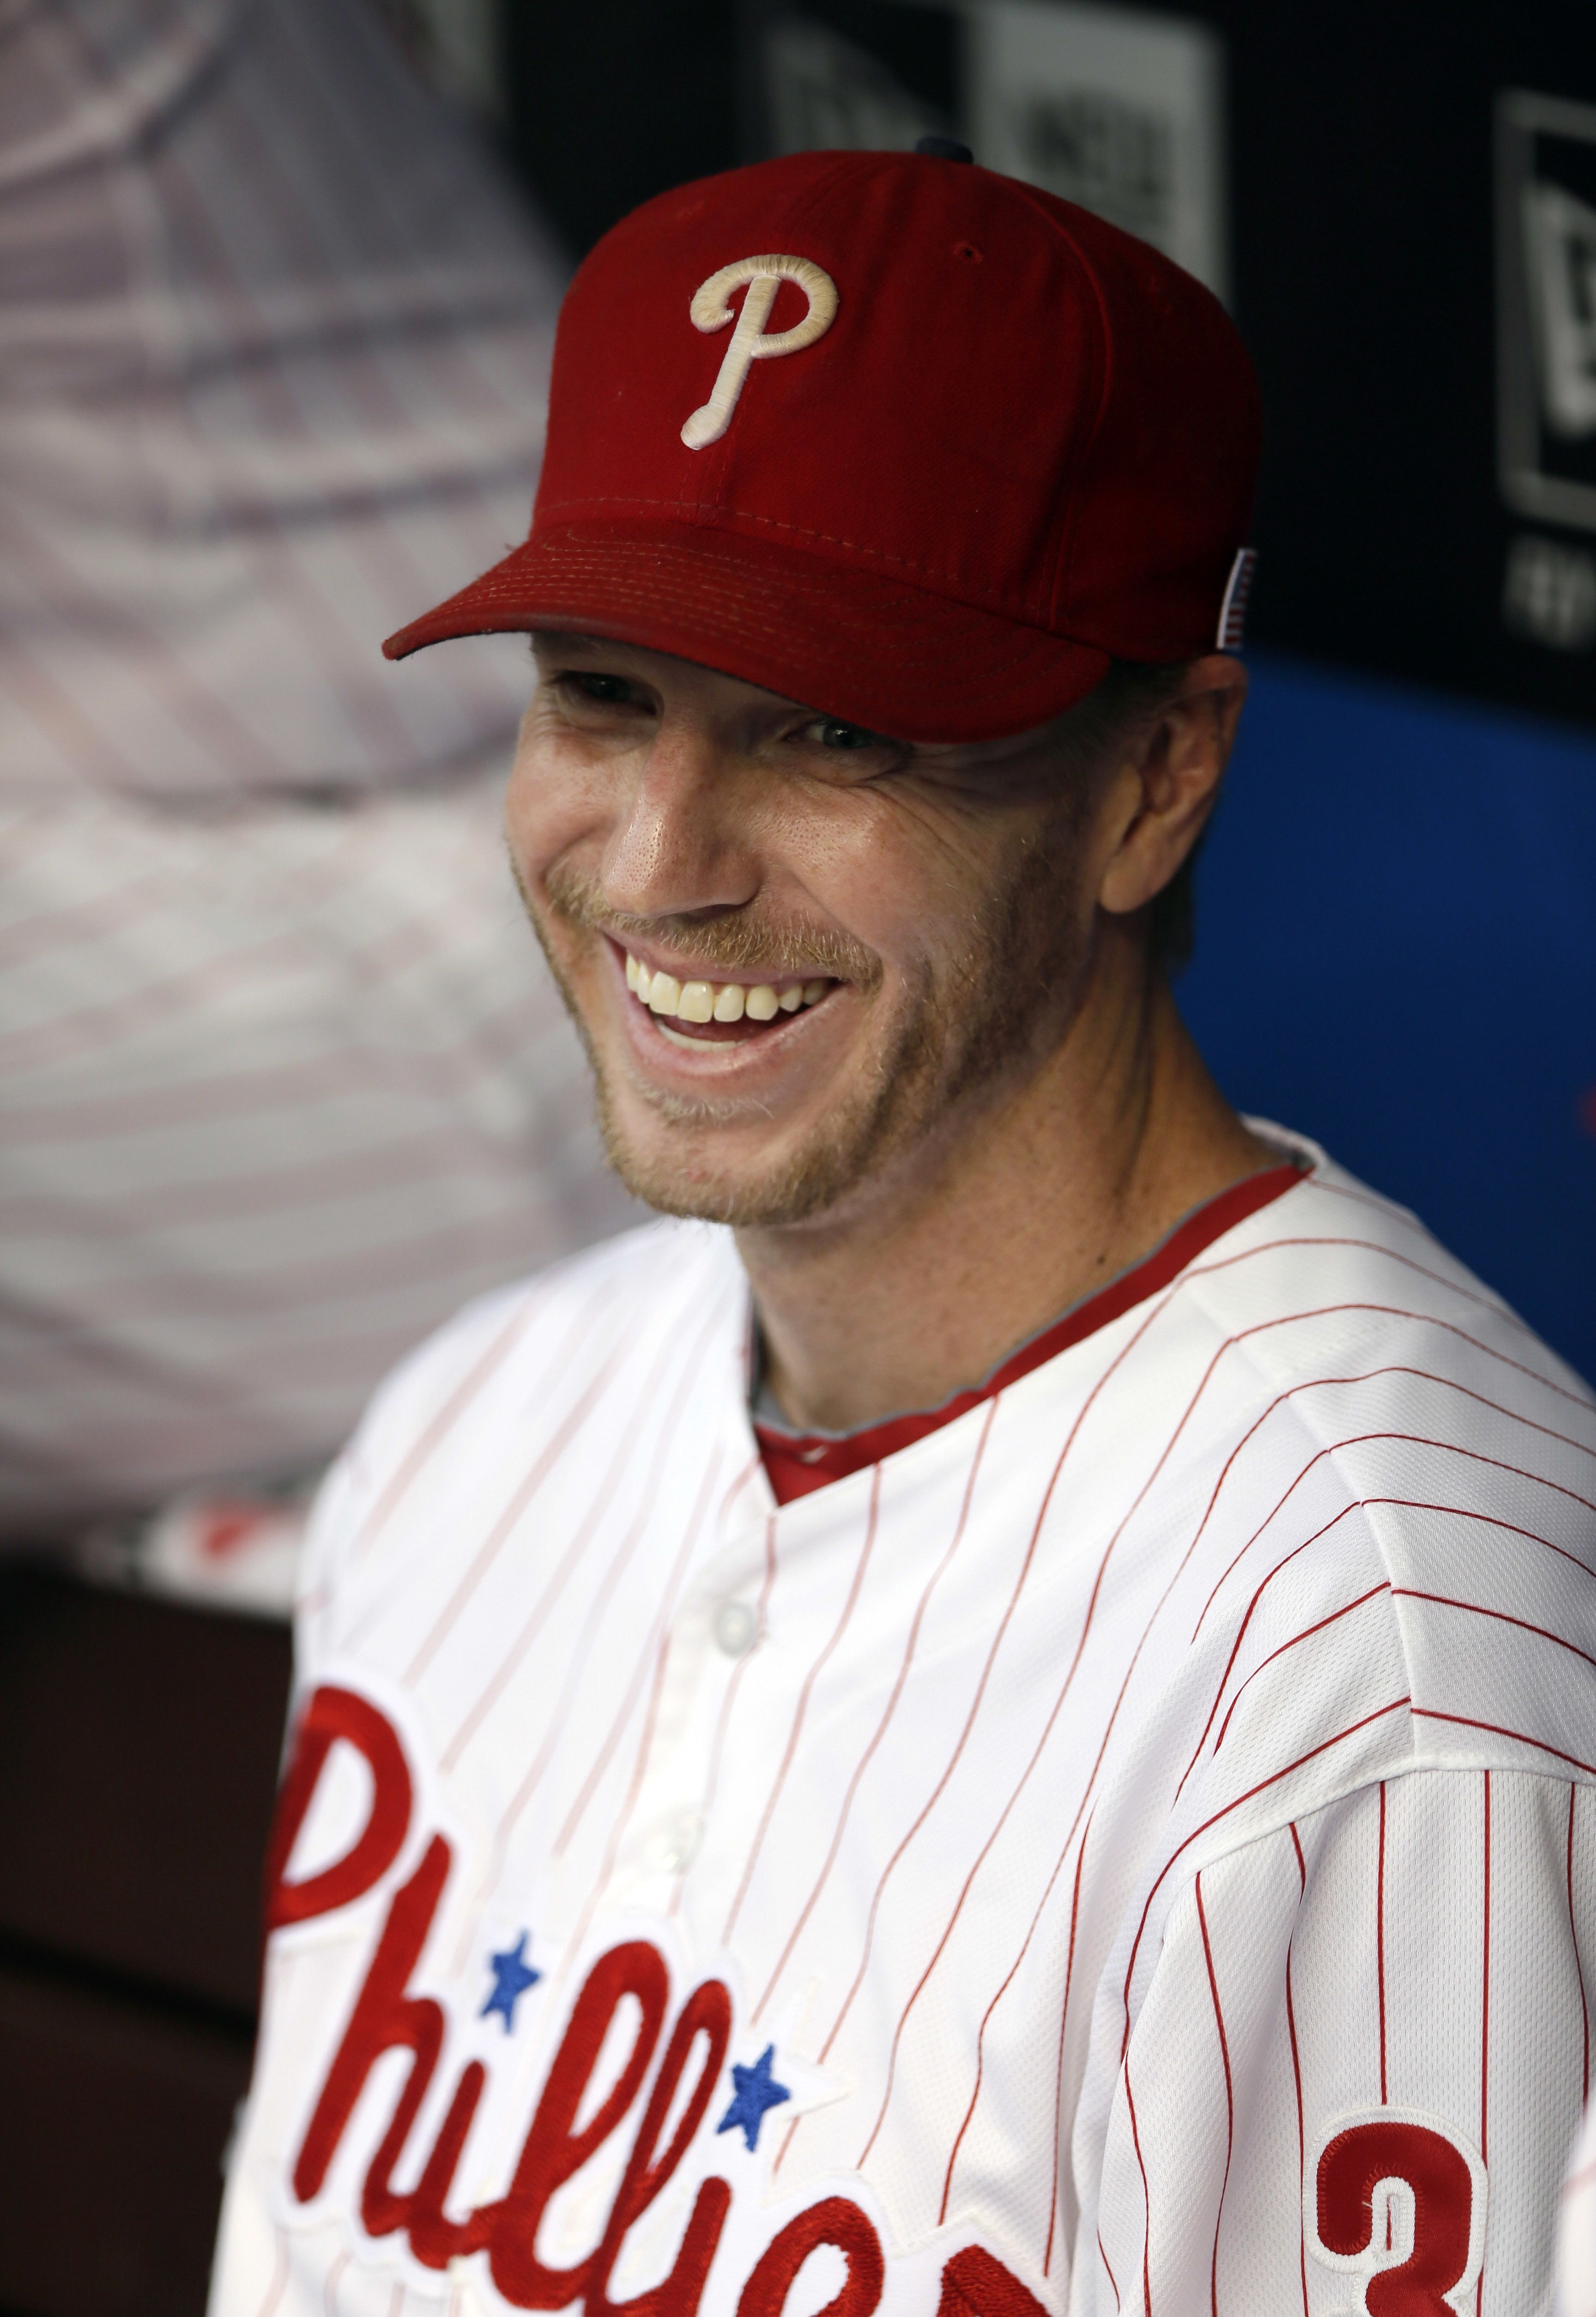 Roy Halladay Enjoys A Moment In The Phillies Dugout In September 2013 Phillies Phillies Baseball Baseball Dugout